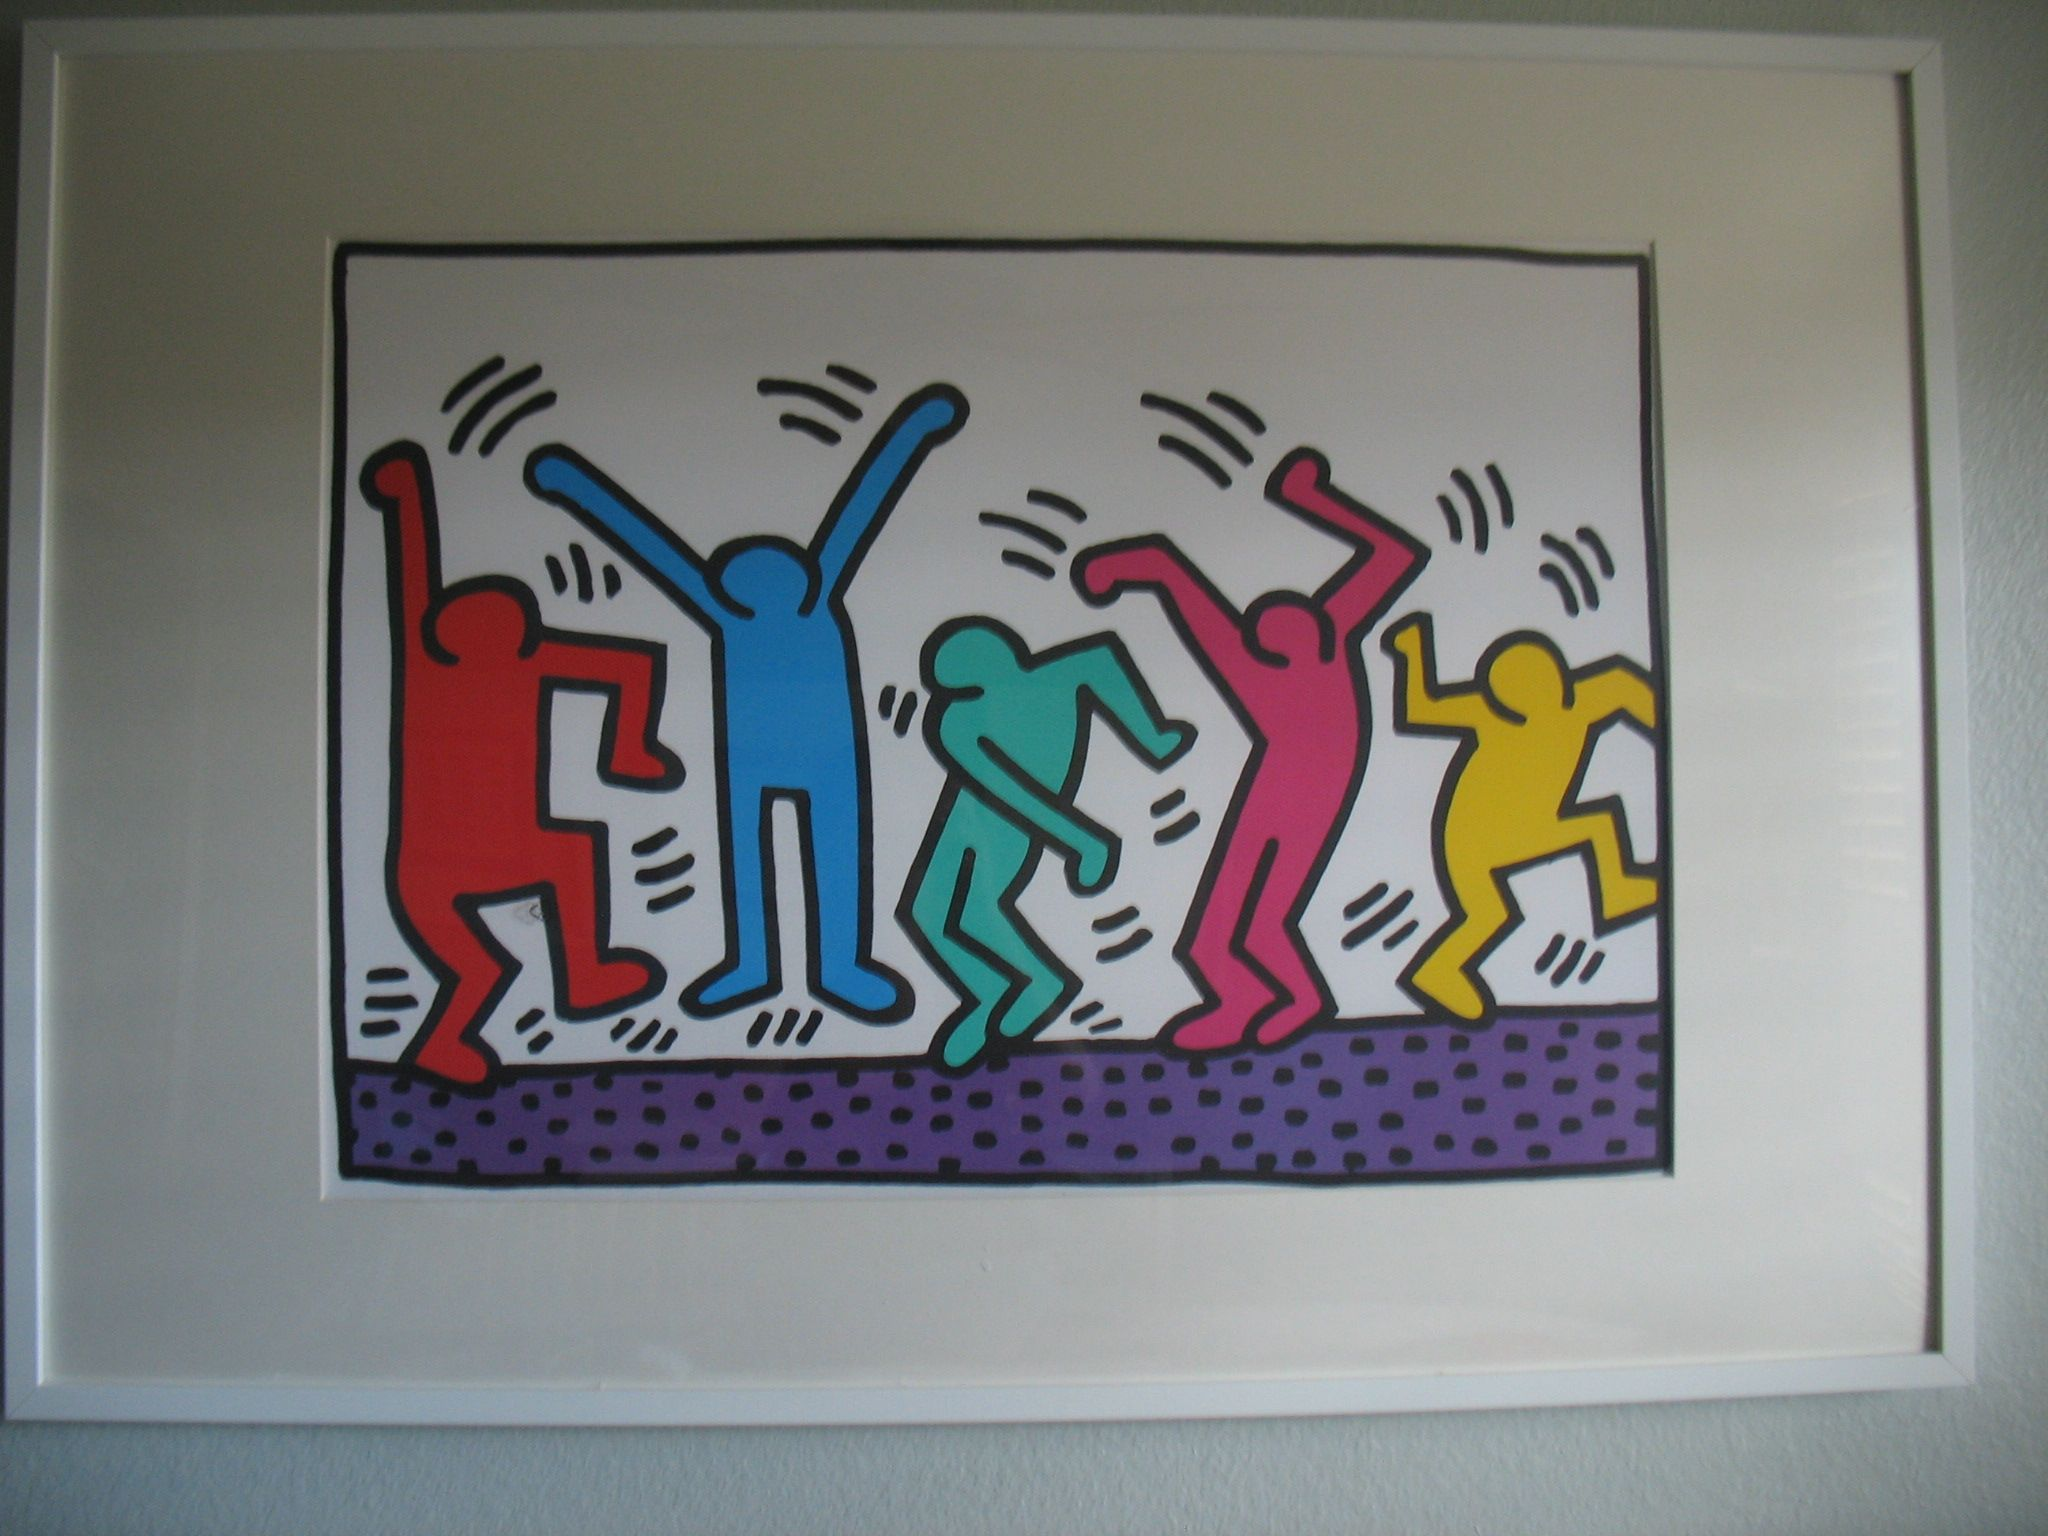 A must for any nursery above your babies changing table. We have this in our nursery and our baby loves it! Any Keith Haring art will do because of the abstract and bright colors.